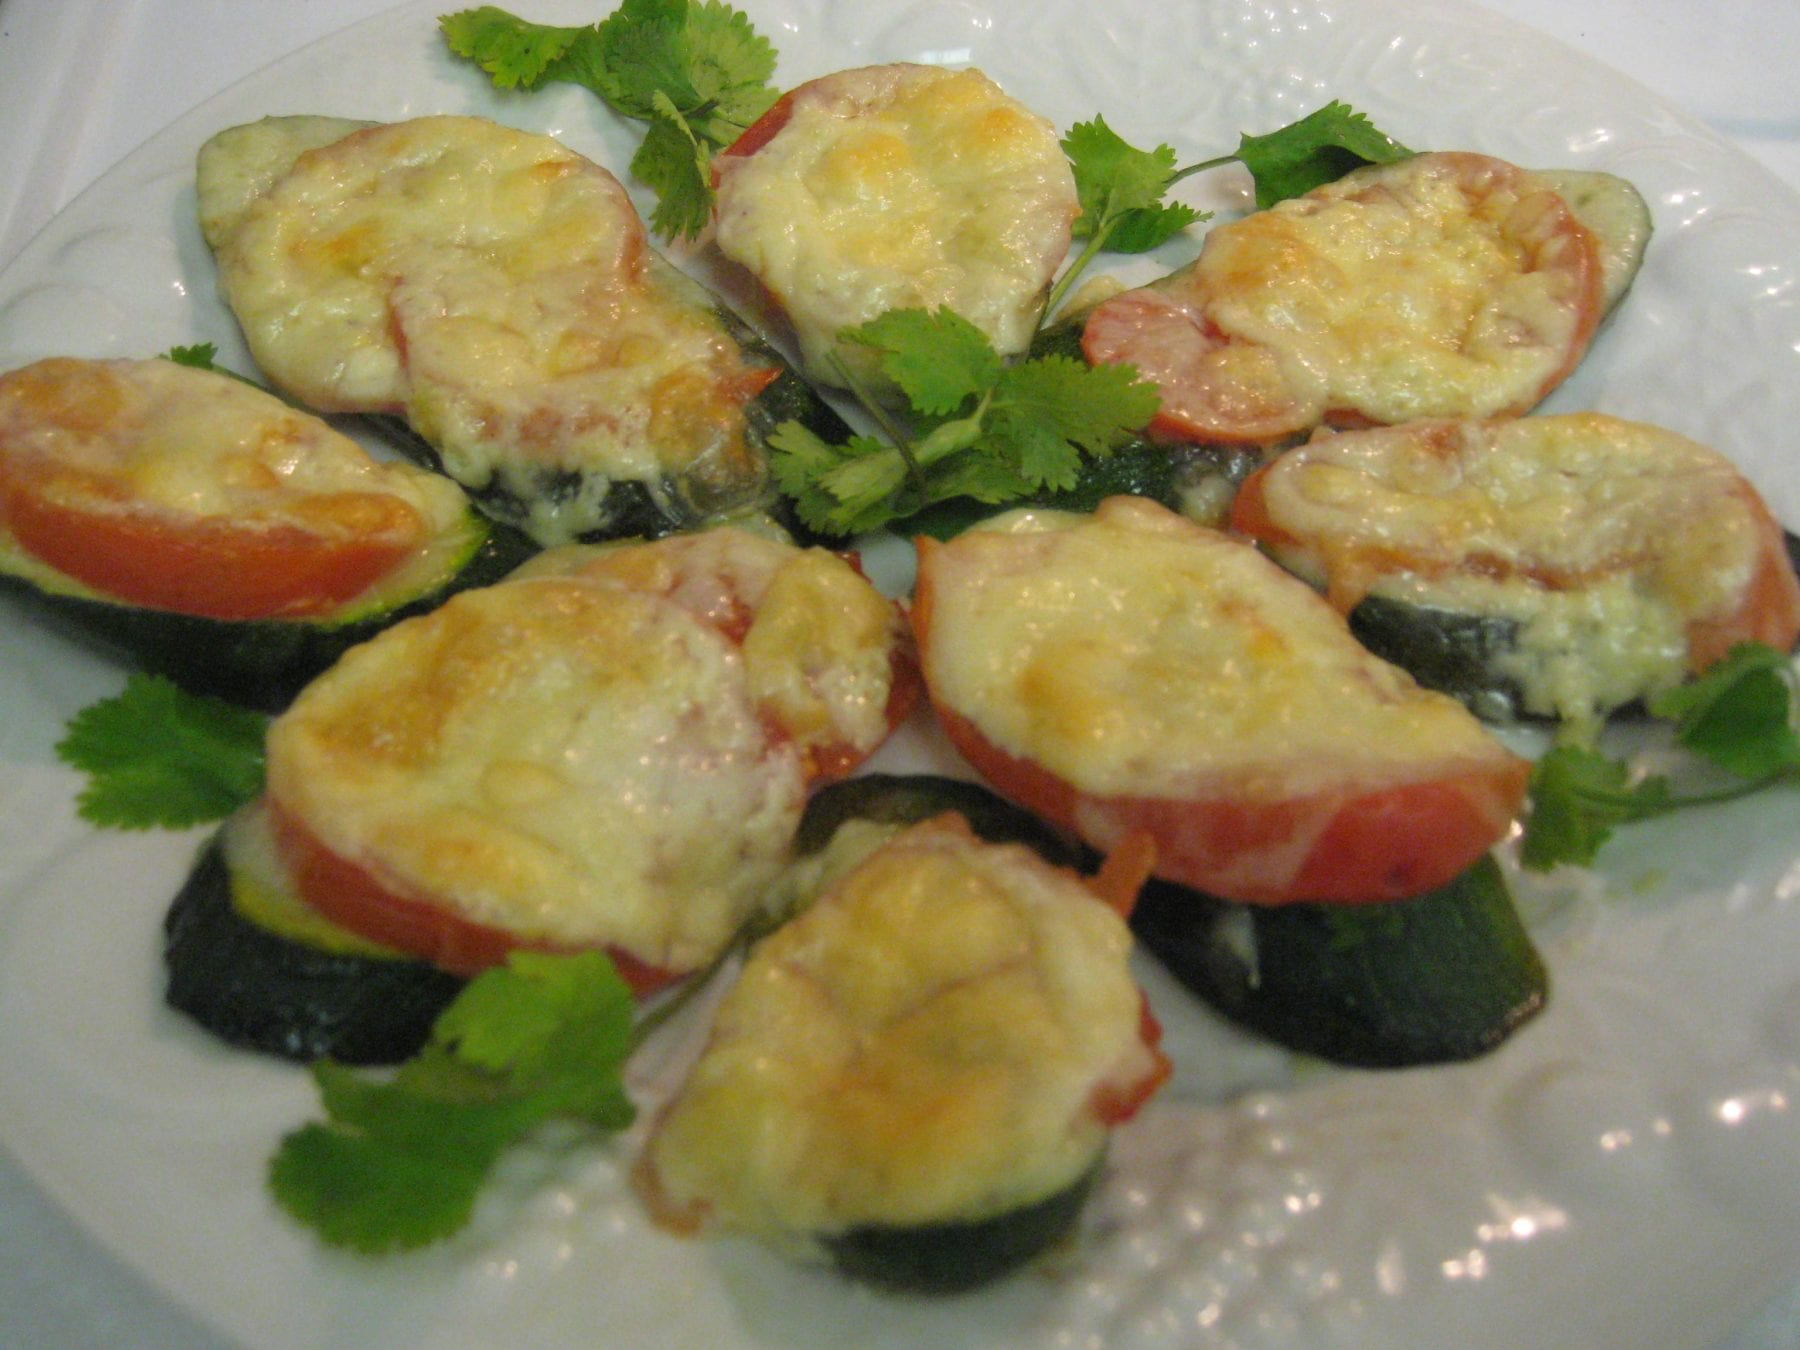 Baked Zucchini Circles with Cheese